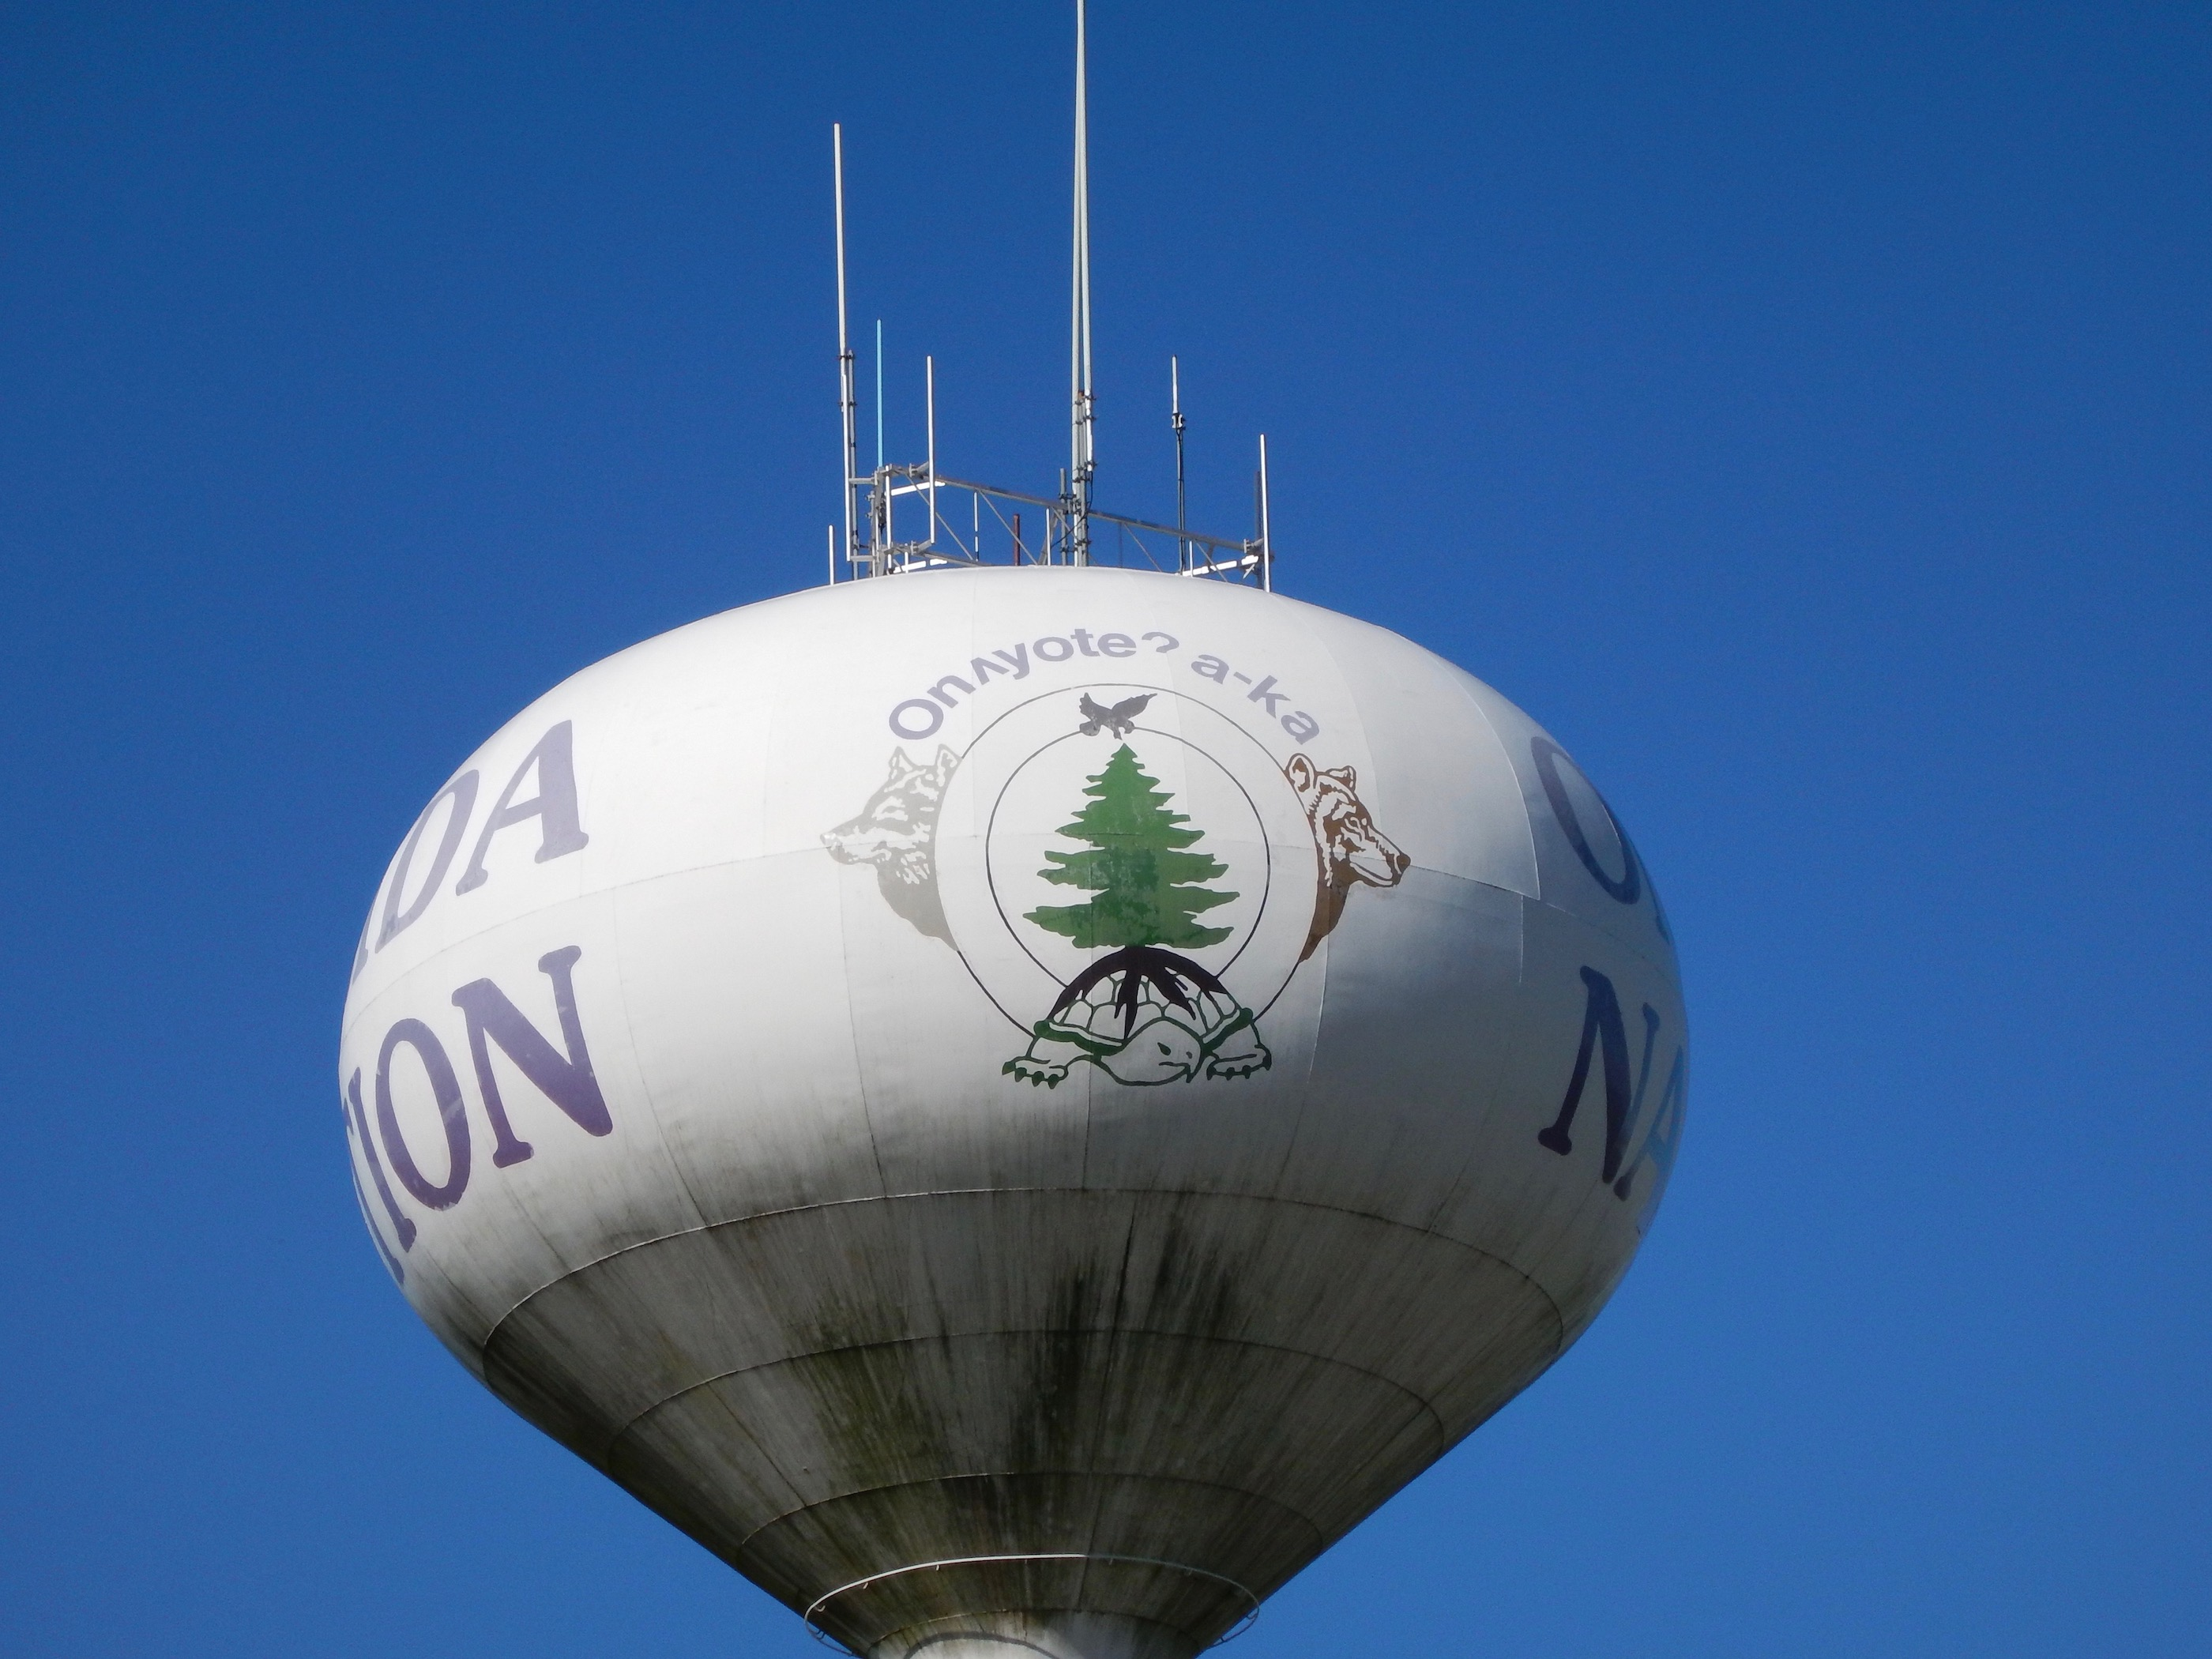 Oneida Nation challenges Oneida Nation over use of 'Oneida' trademarks